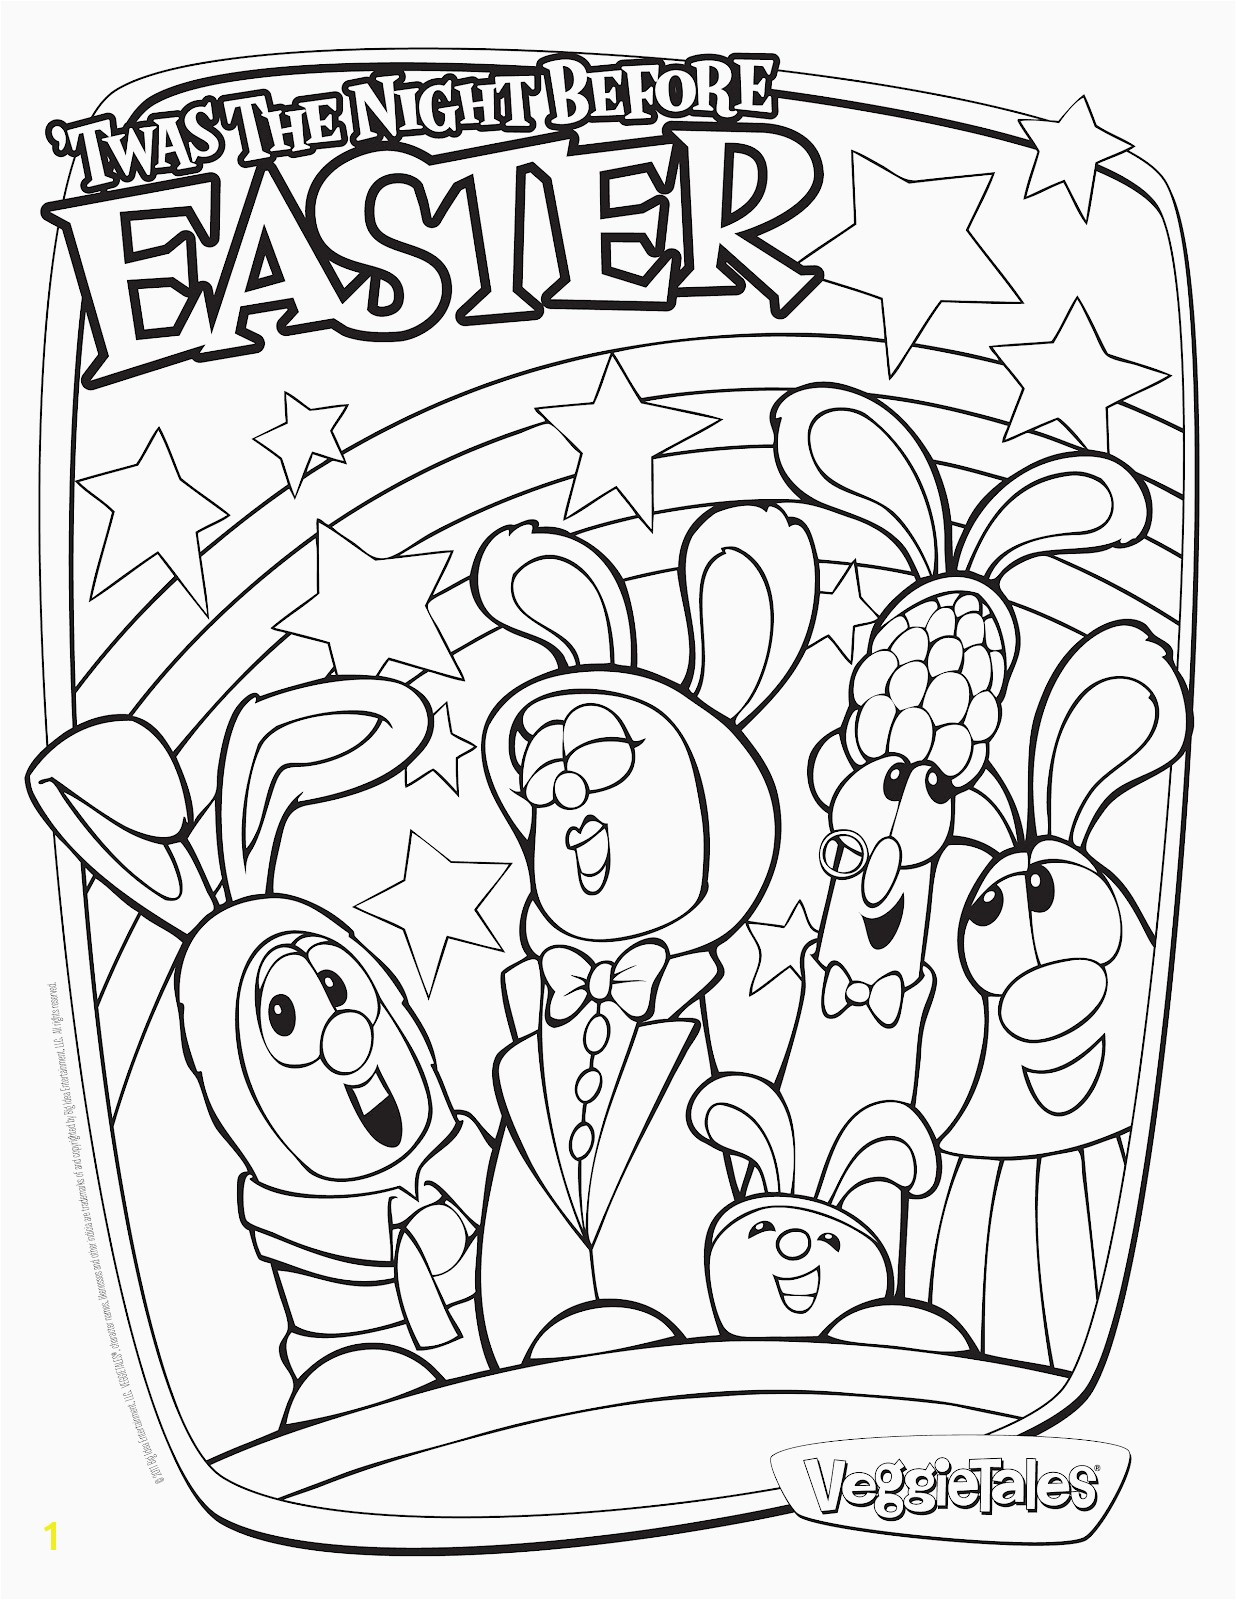 Easy Coloring Pages for Preschoolers Inspirational Best Coloring Page Adult Od Kids Simple Stock Vector –